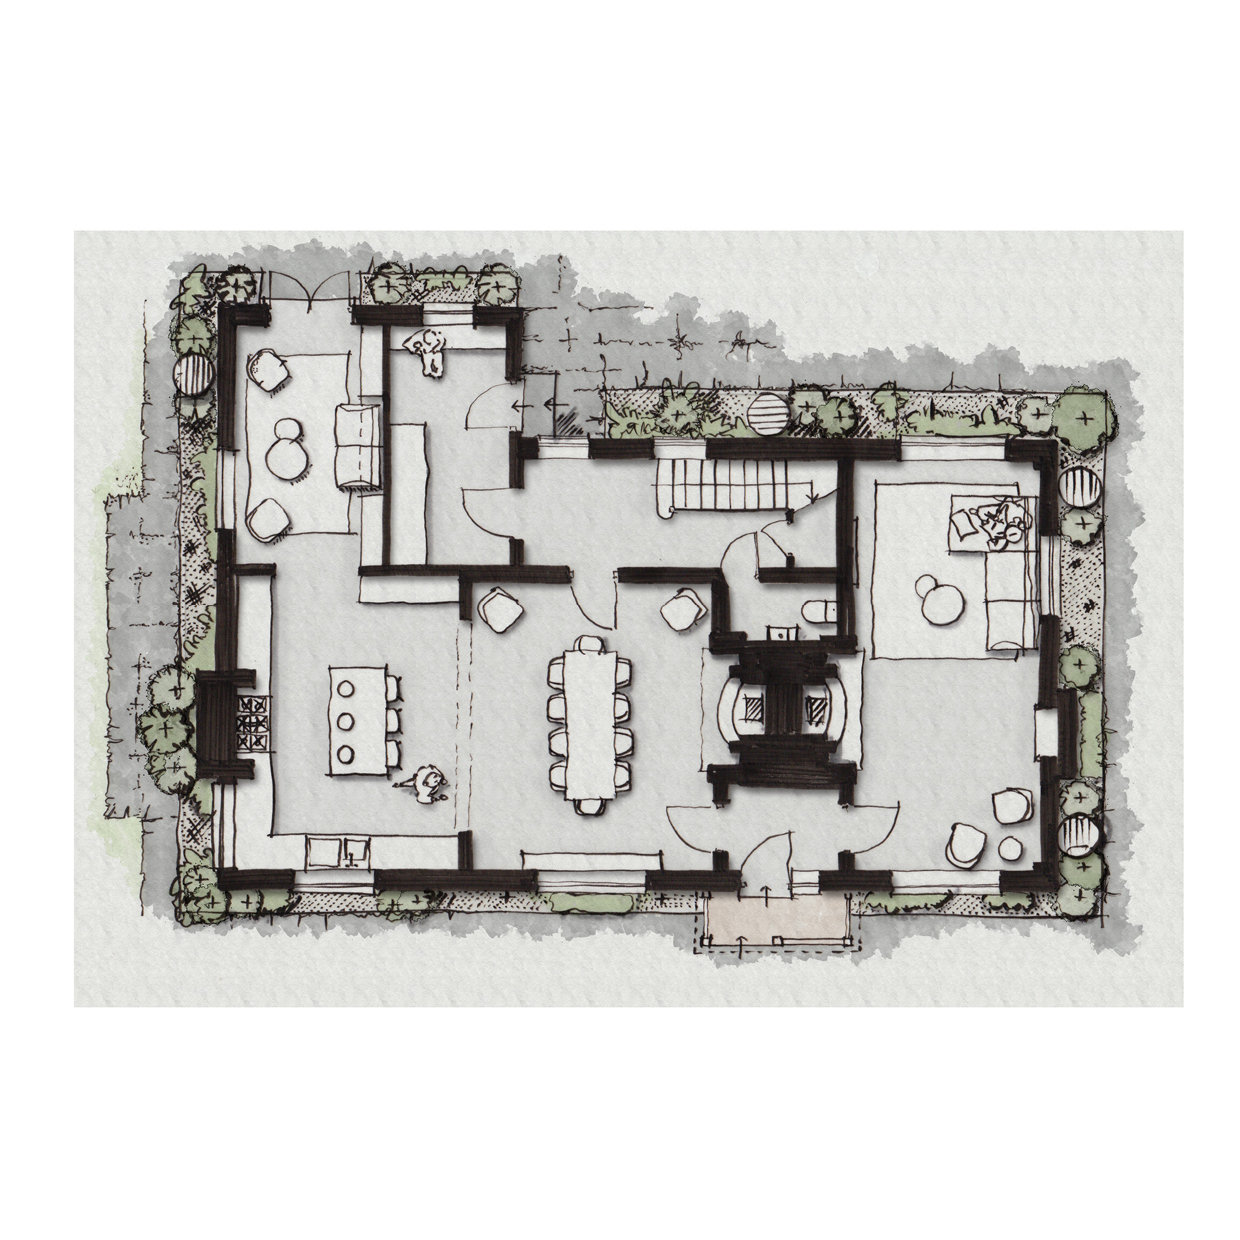 Country Manor Sketch Plan